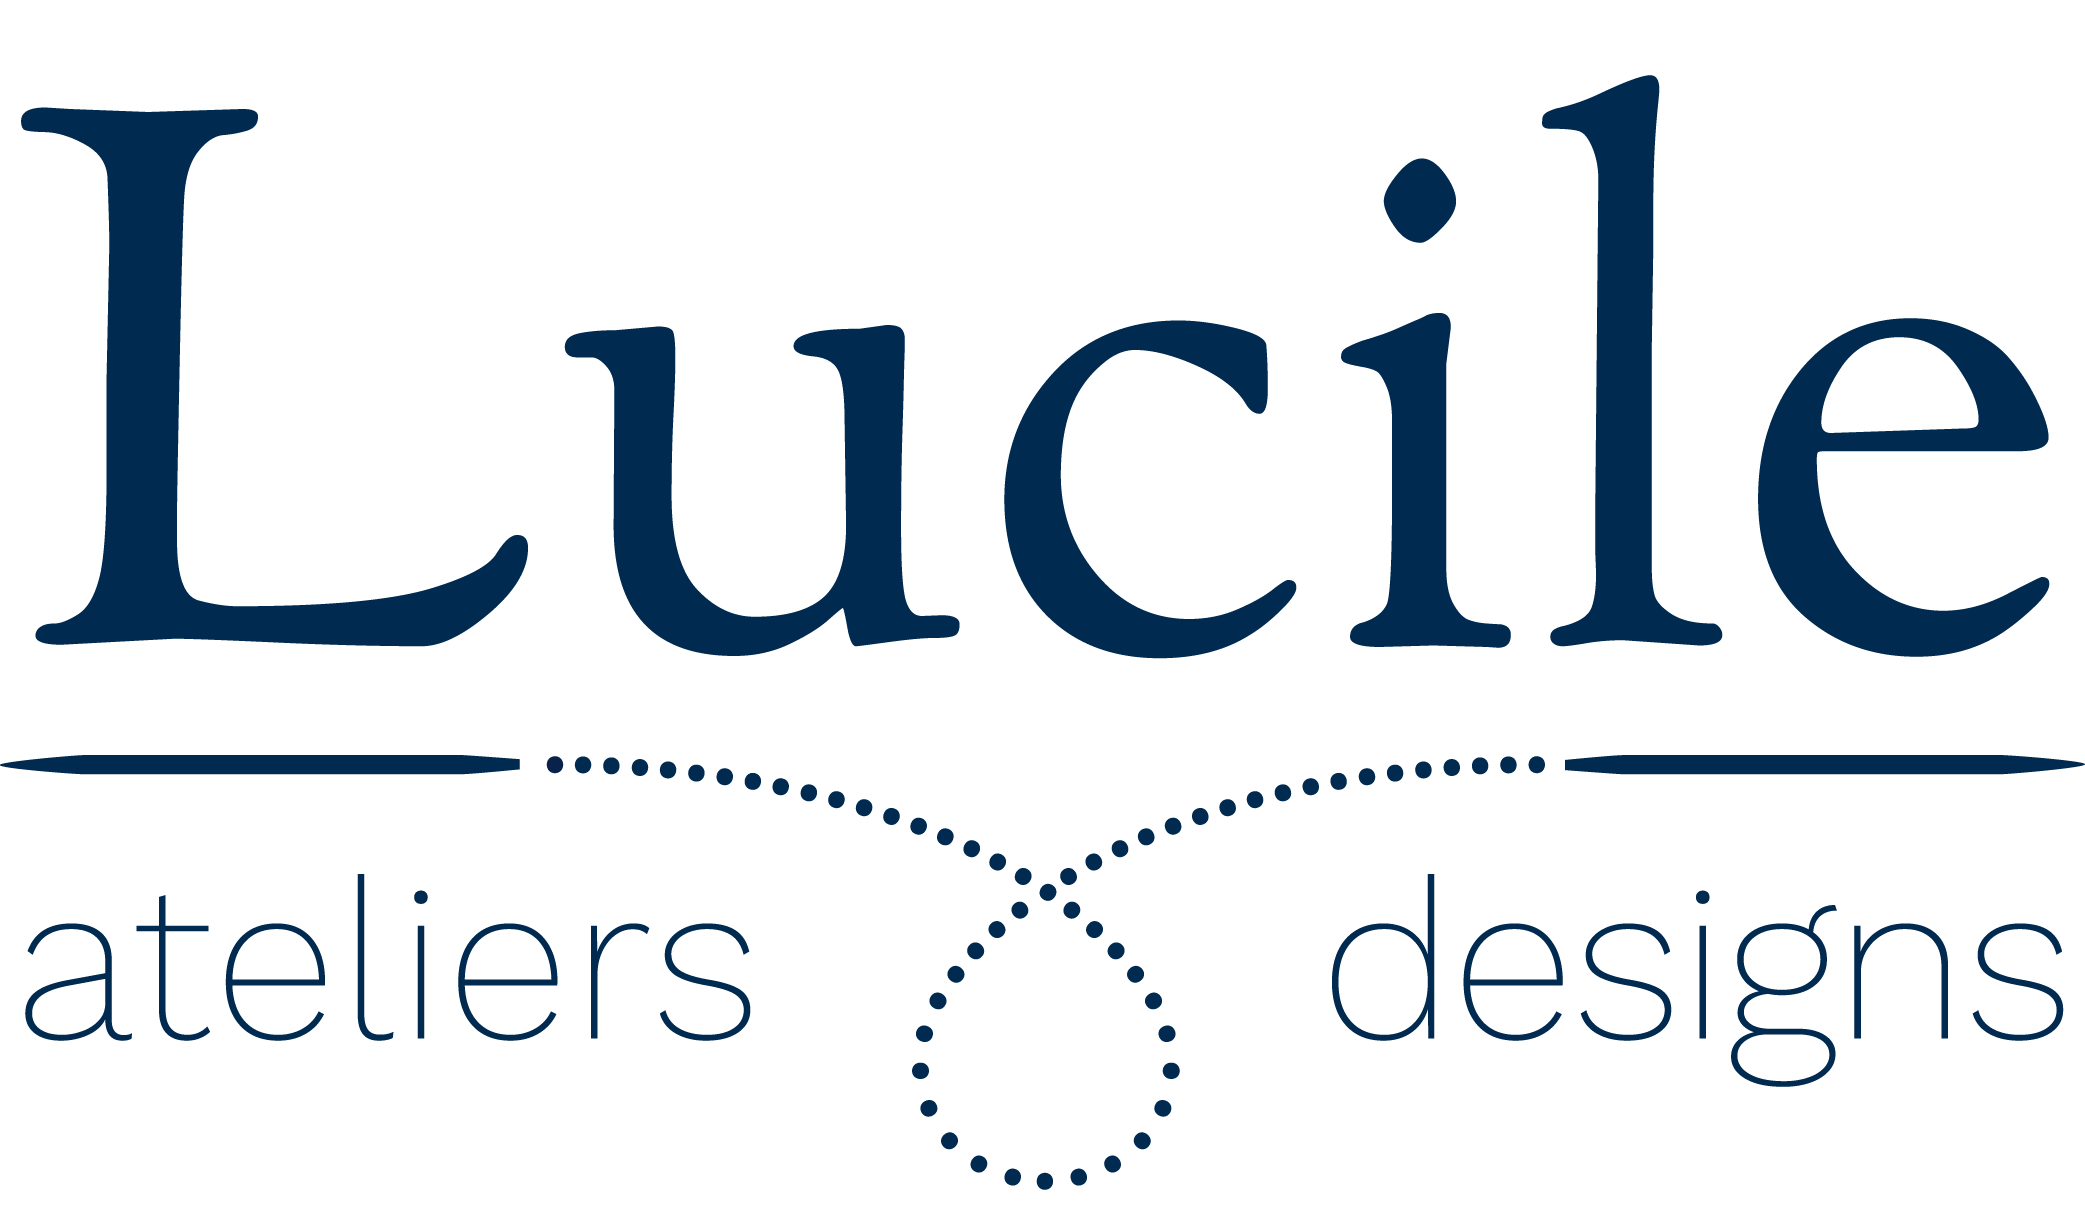 Lucile | ateliers & designs